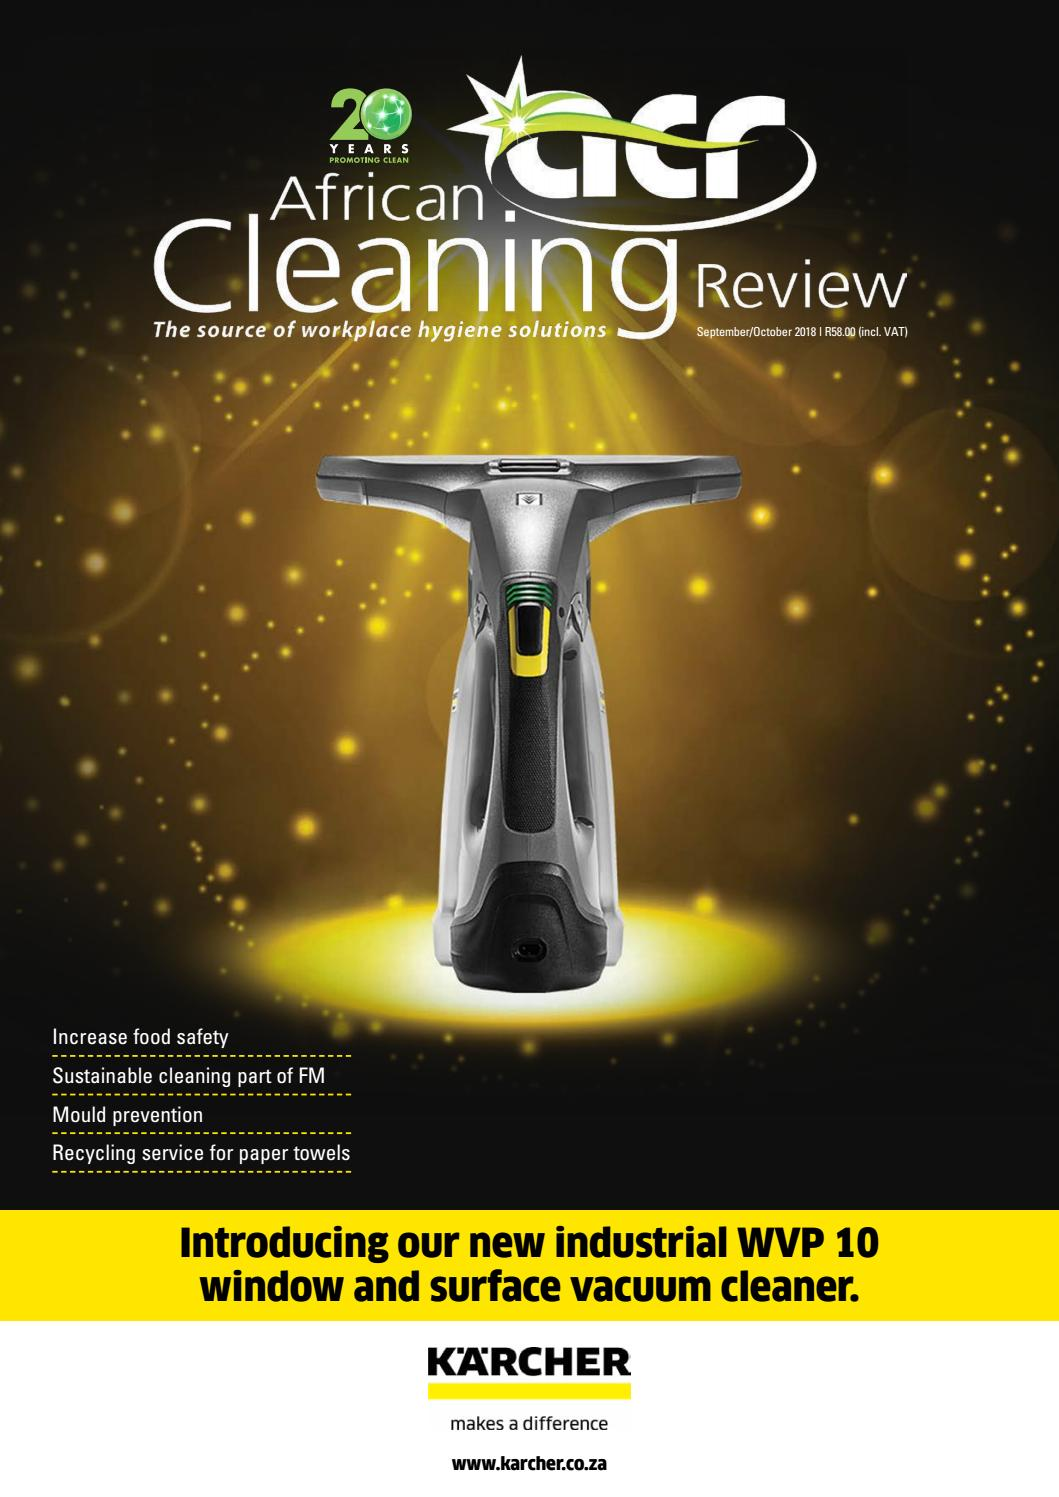 African Cleaning Review SeptOct'18 issue by African Cleaning